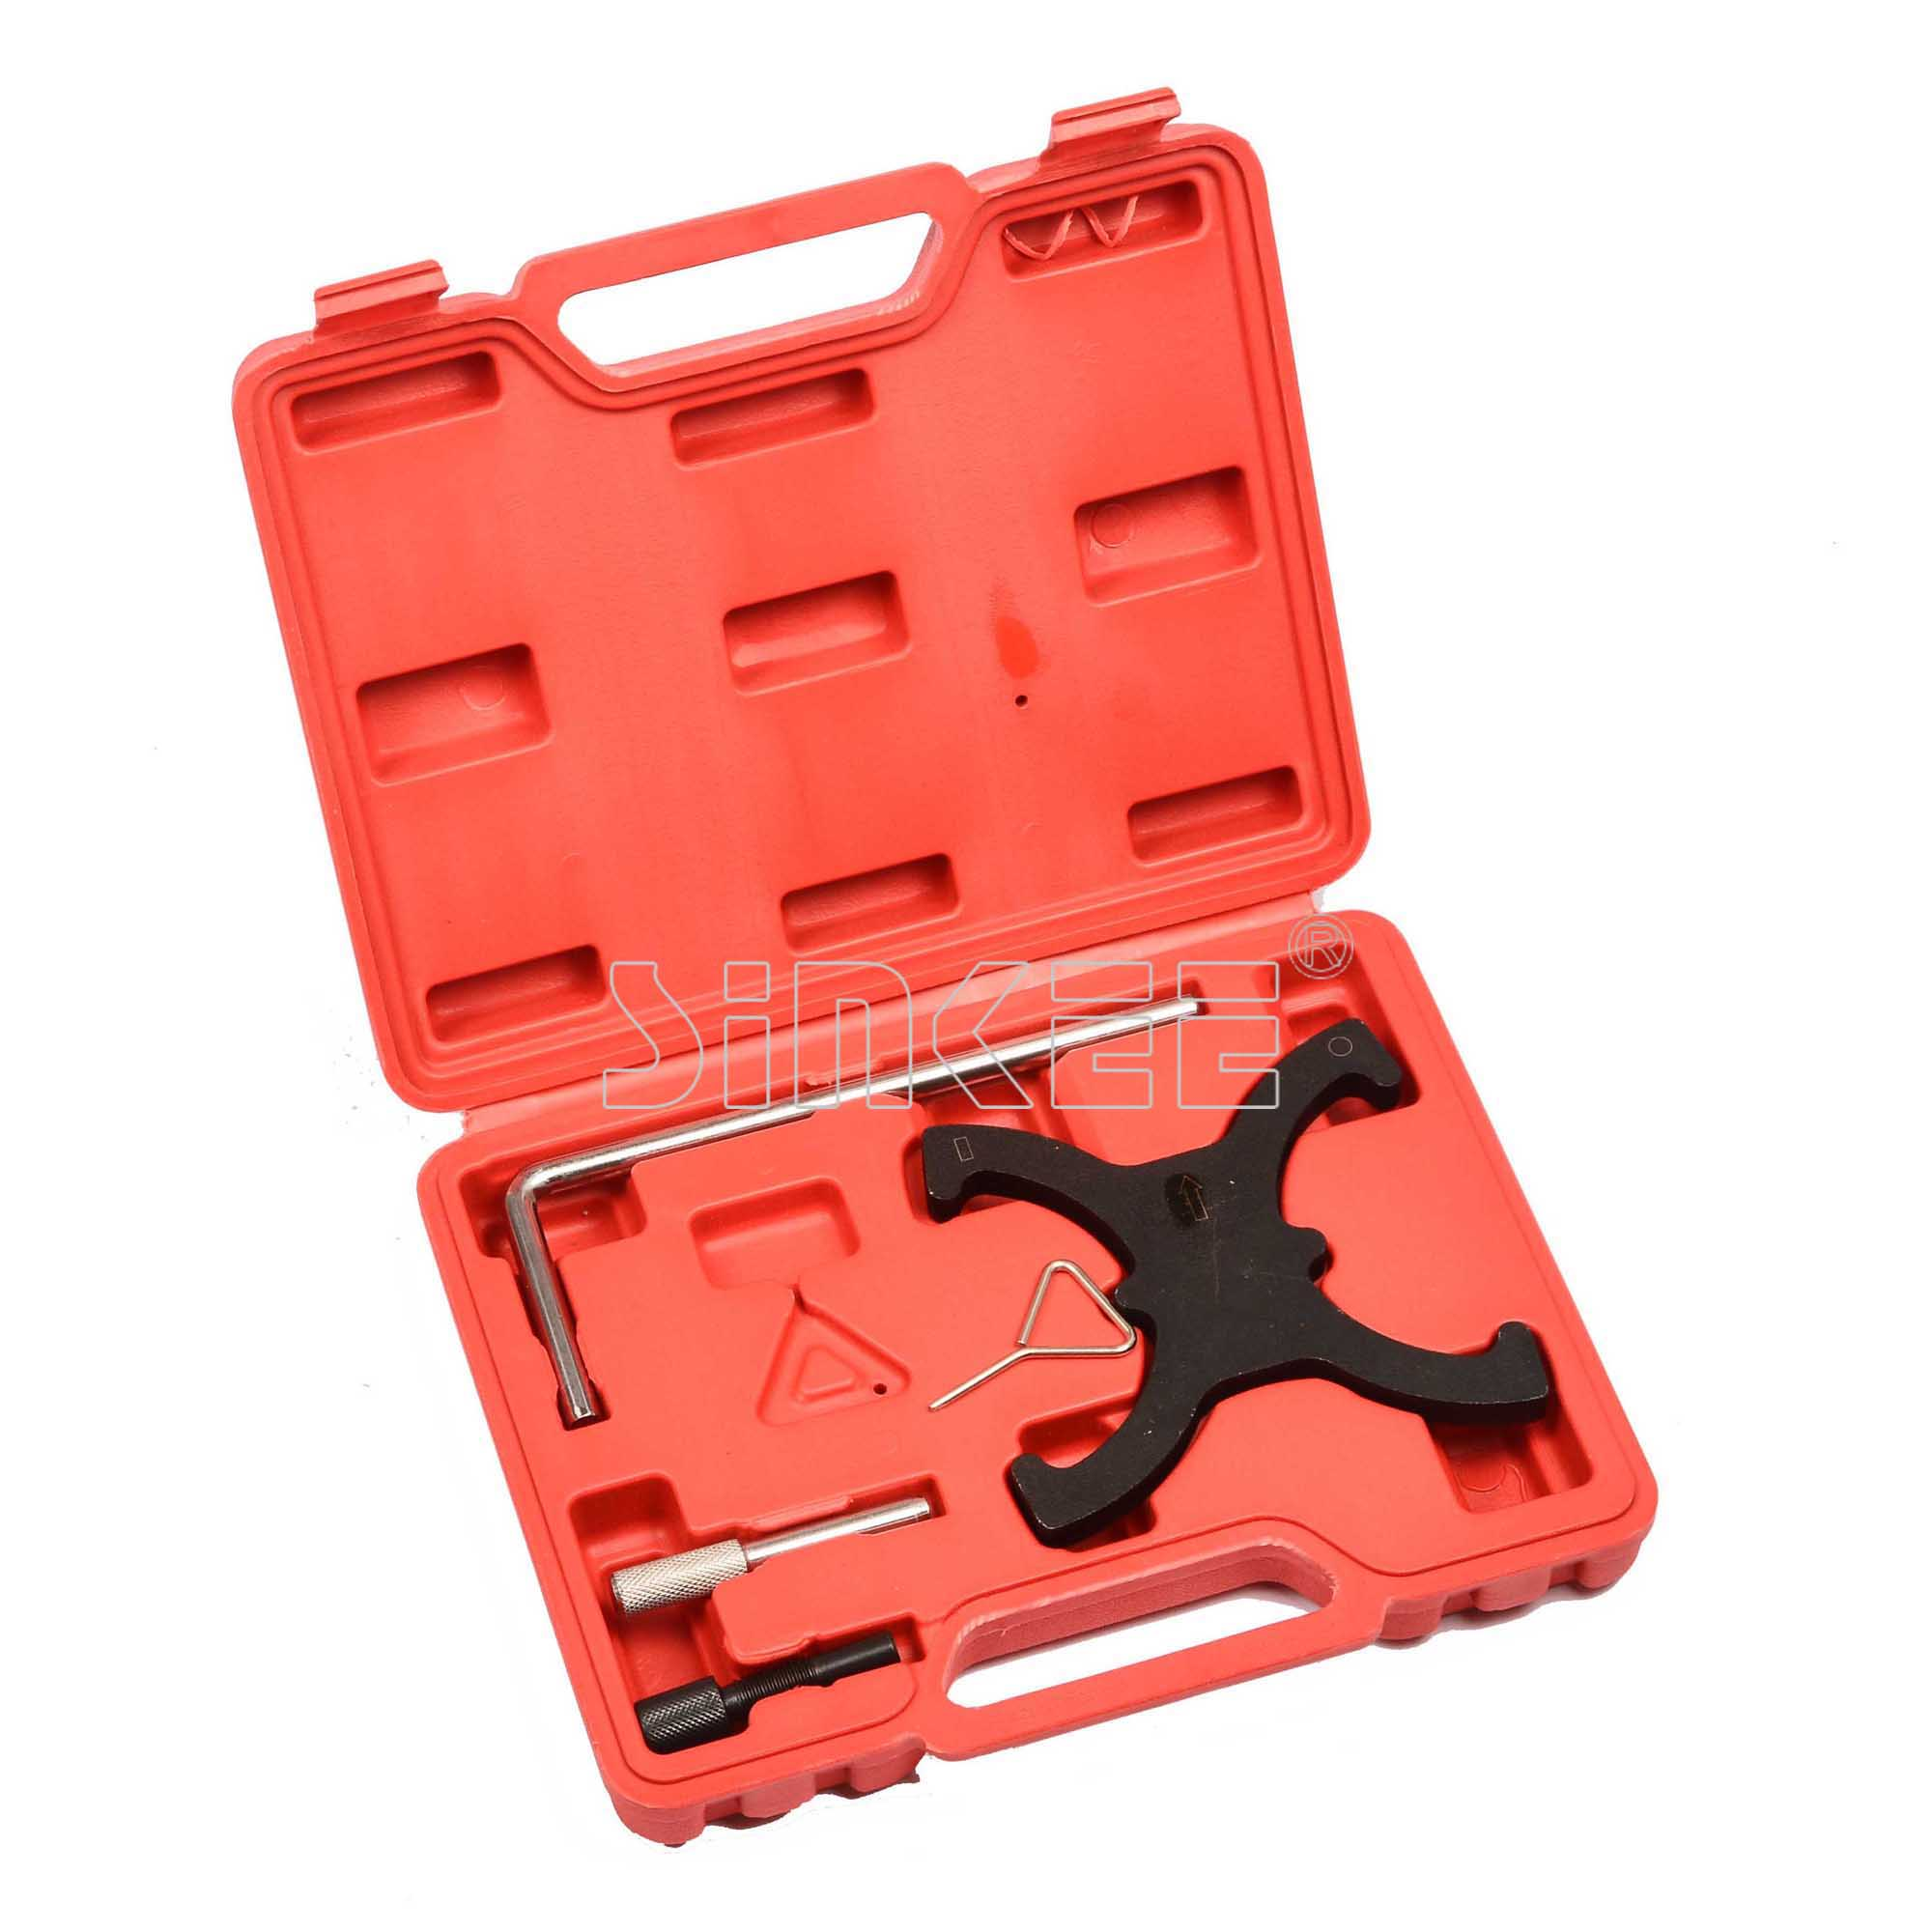 Petrol Engine Timing Camshaft Crankshaft Lock Tool For Ford Focus C MAX 1 6 TI VCT